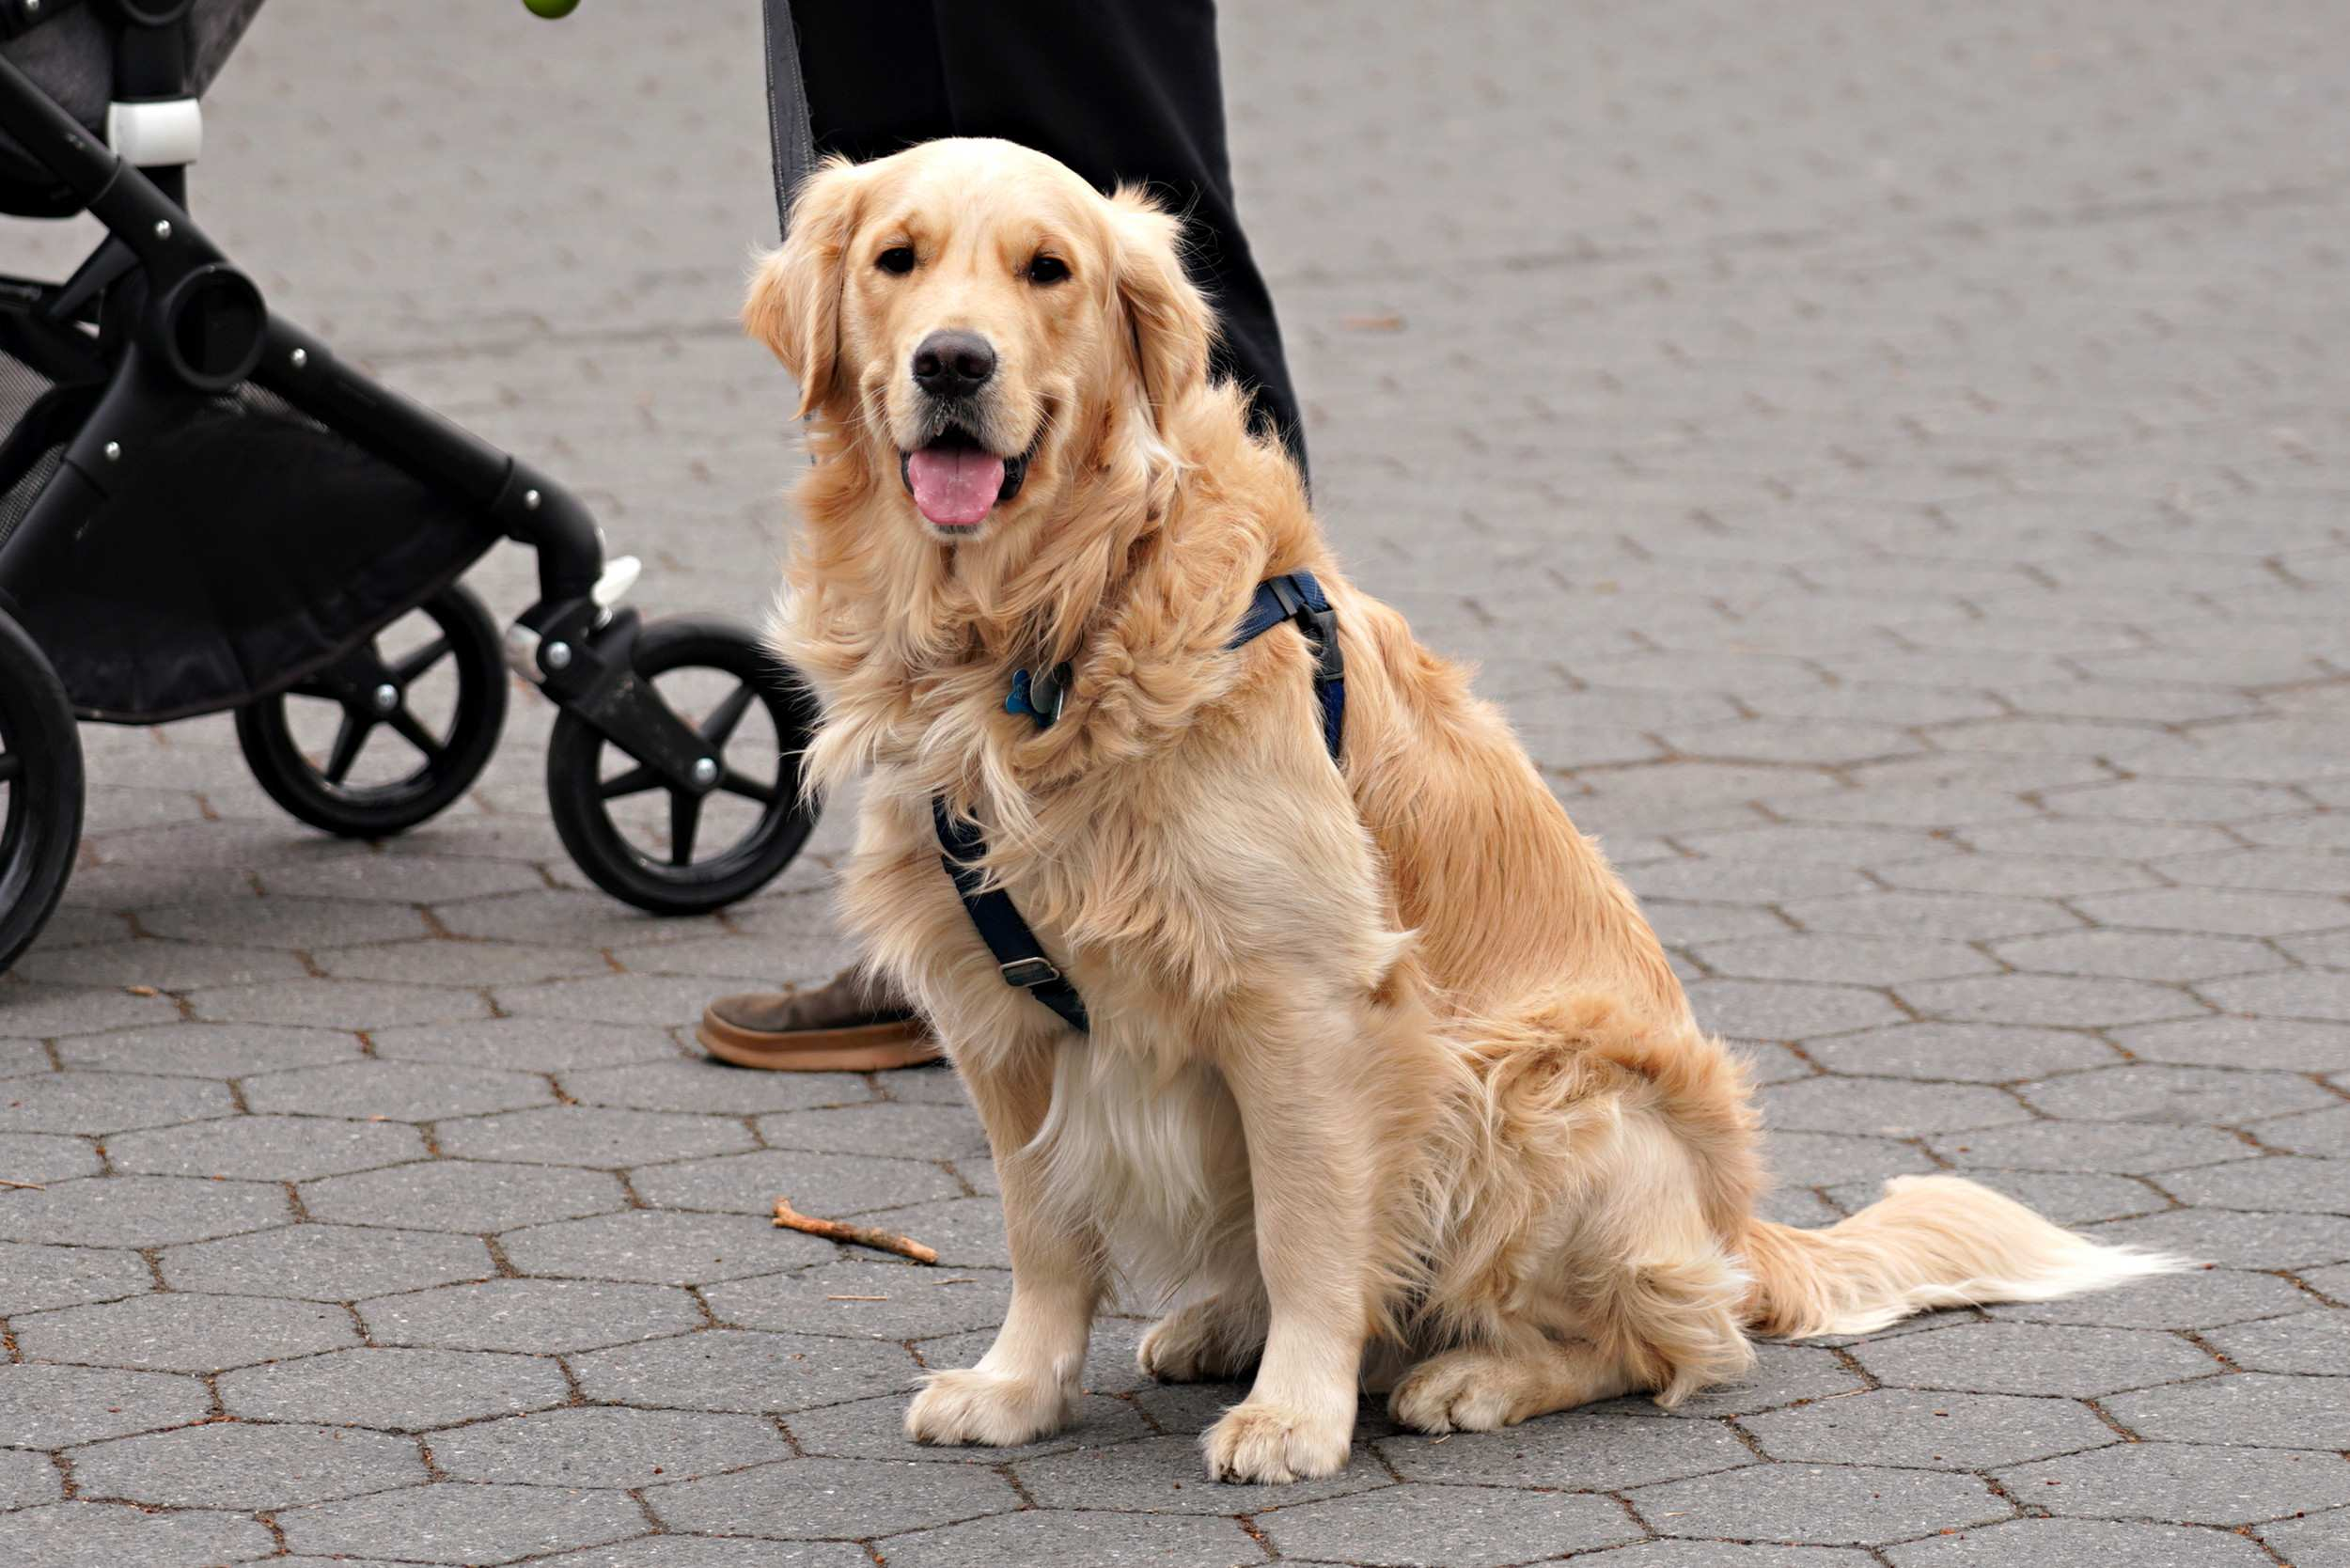 GOLDEN RETRIEVER Dogs Breed In The World